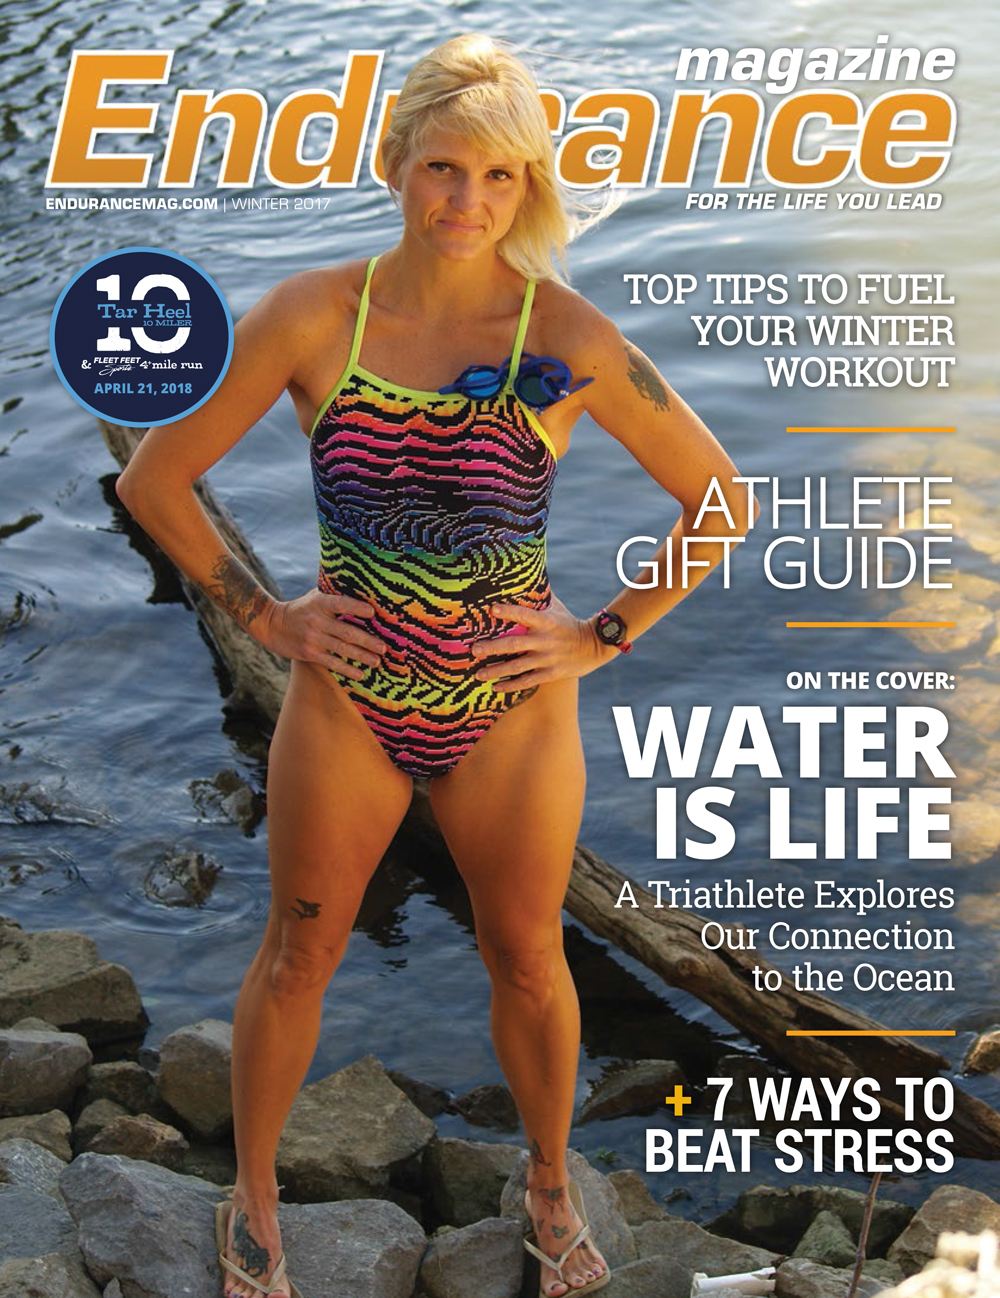 Endurance Triangle Winter 2017 Cover